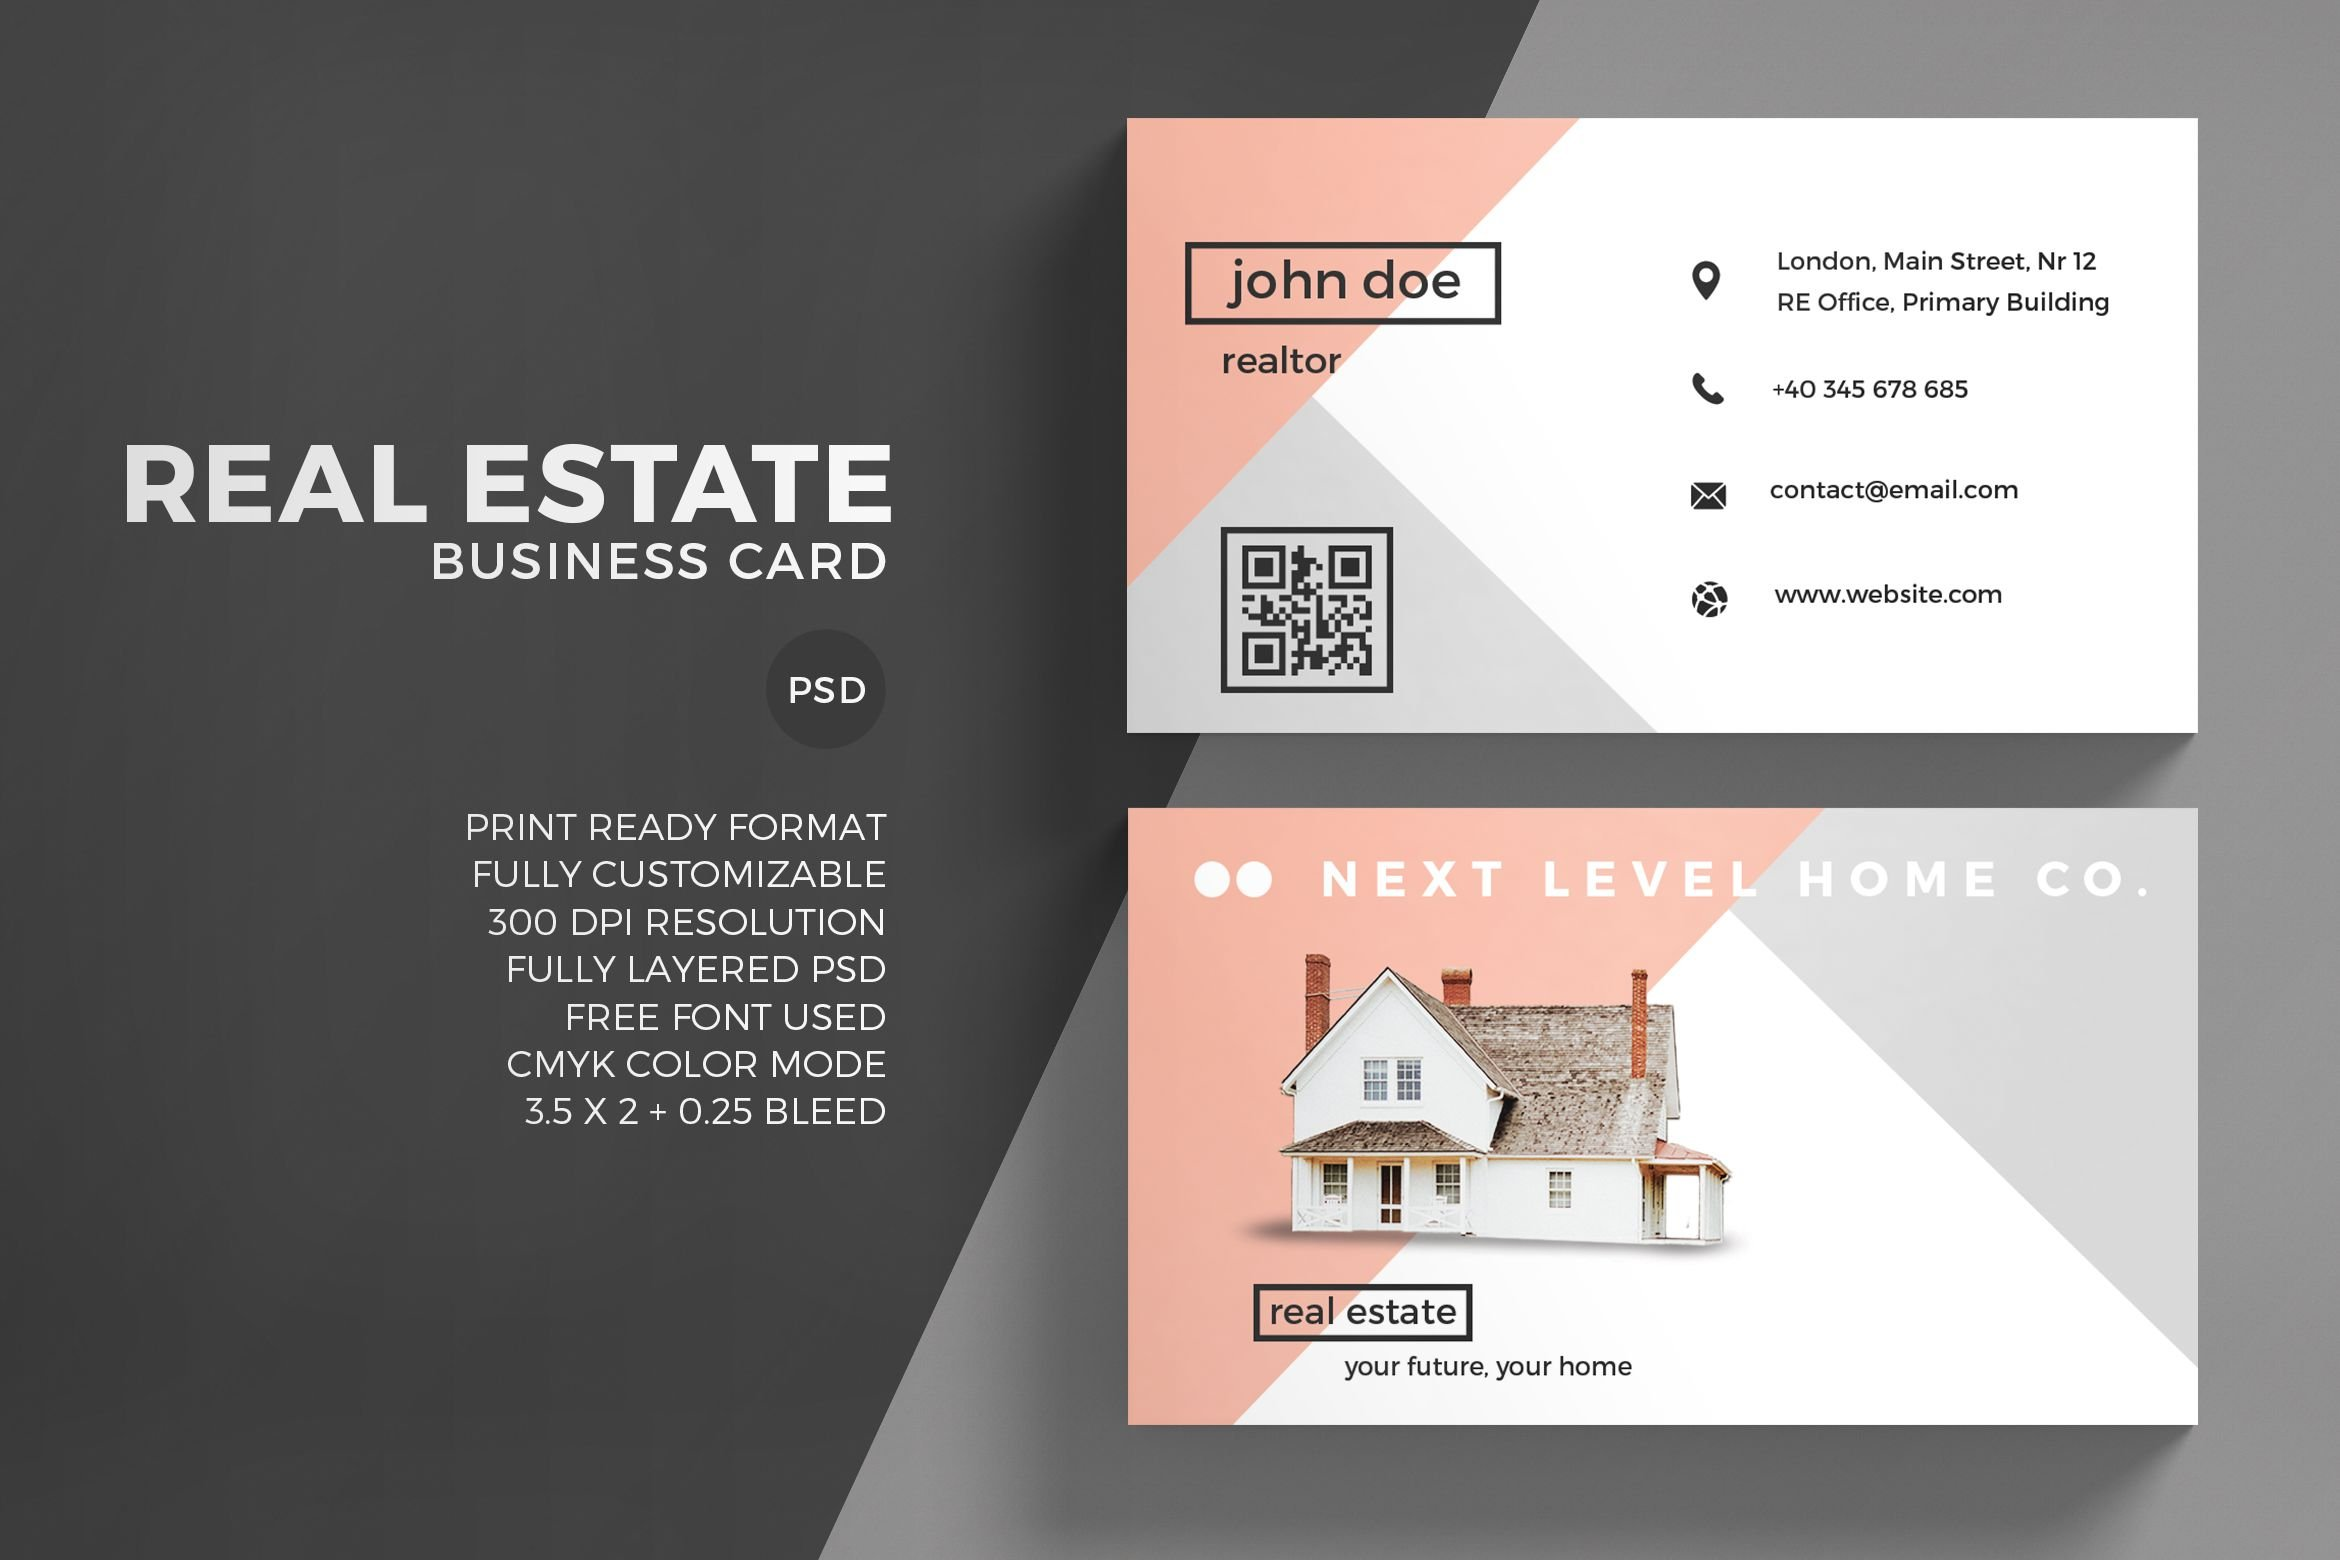 Real estate business card template business card templates real estate business card template business card templates creative market reheart Choice Image